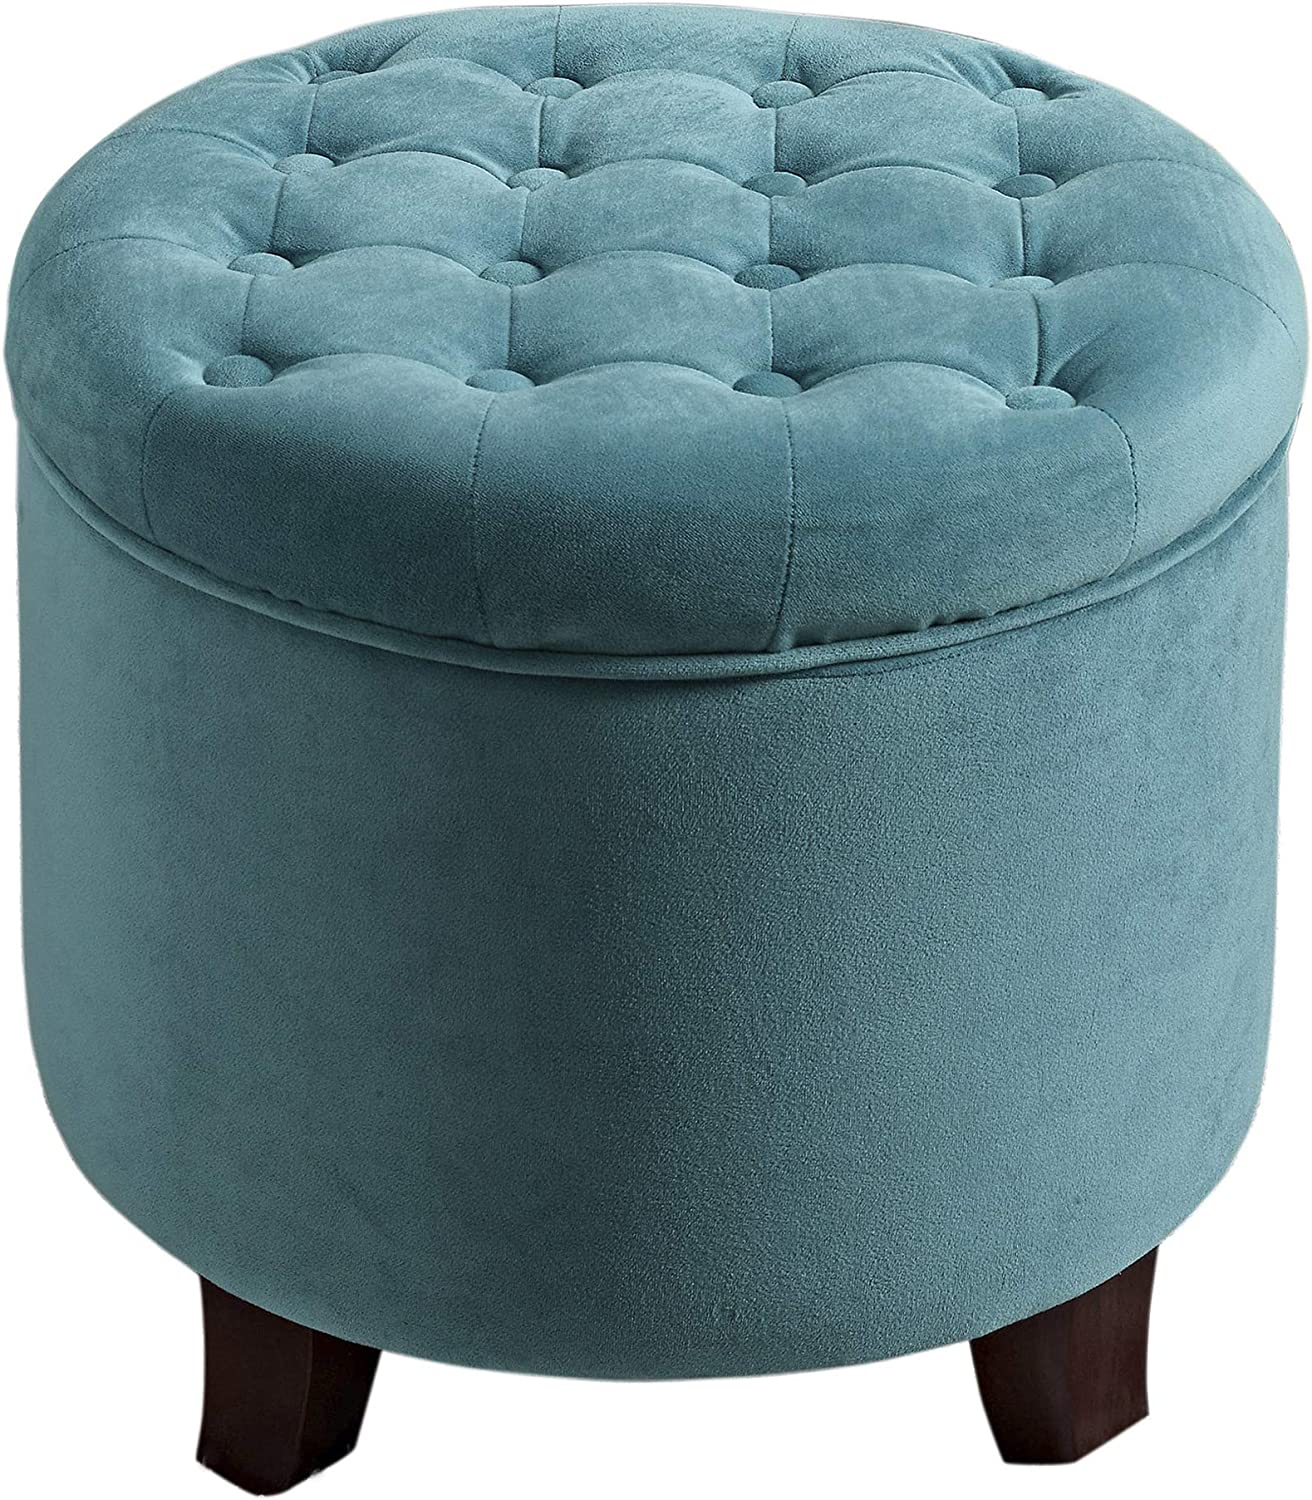 HomePop by Mesa Mall Kinfine Fabric Upholstered Round - Free shipping / New Storage Ottoman Ve